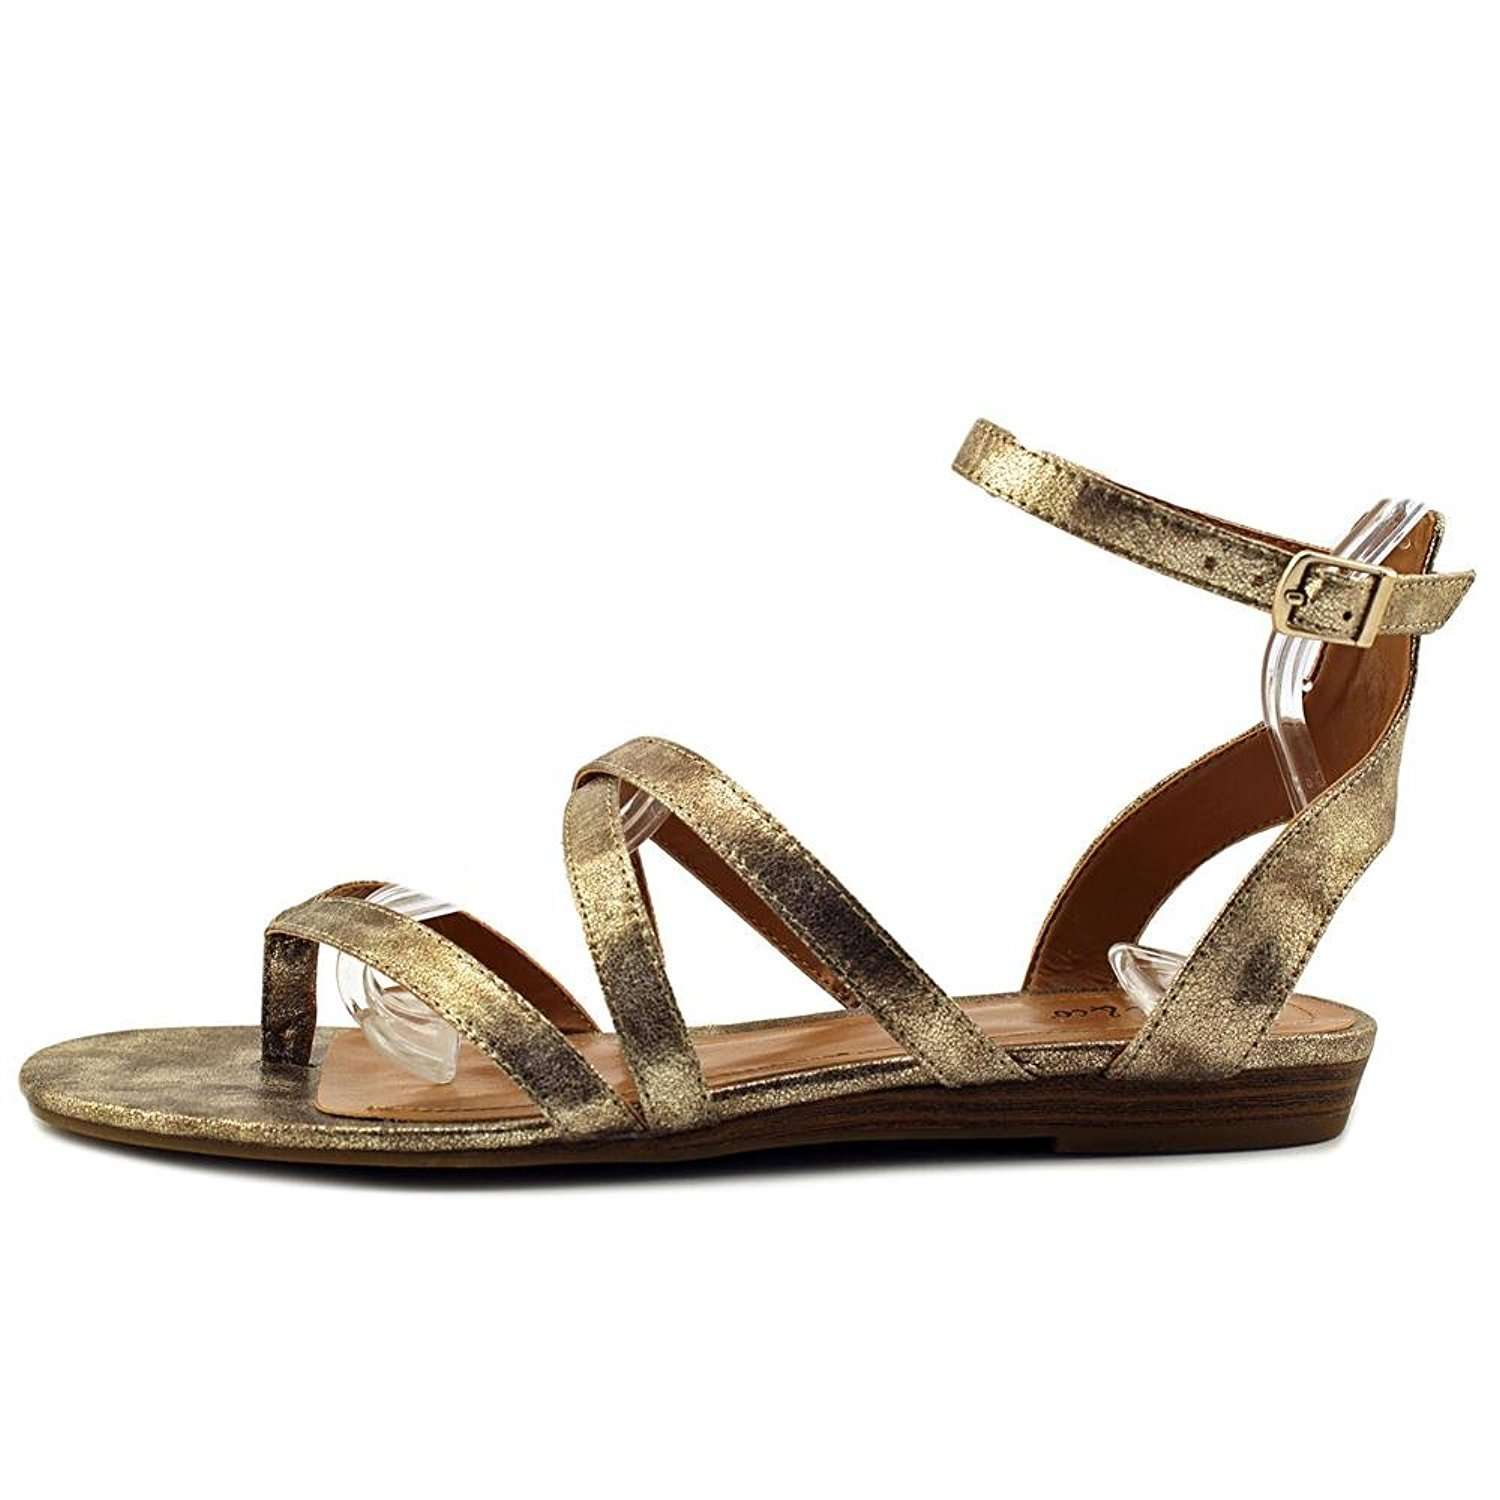 Style & Co. Womens Bahara Open Toe Casual Strappy Sandals, Gold, Size 9.0